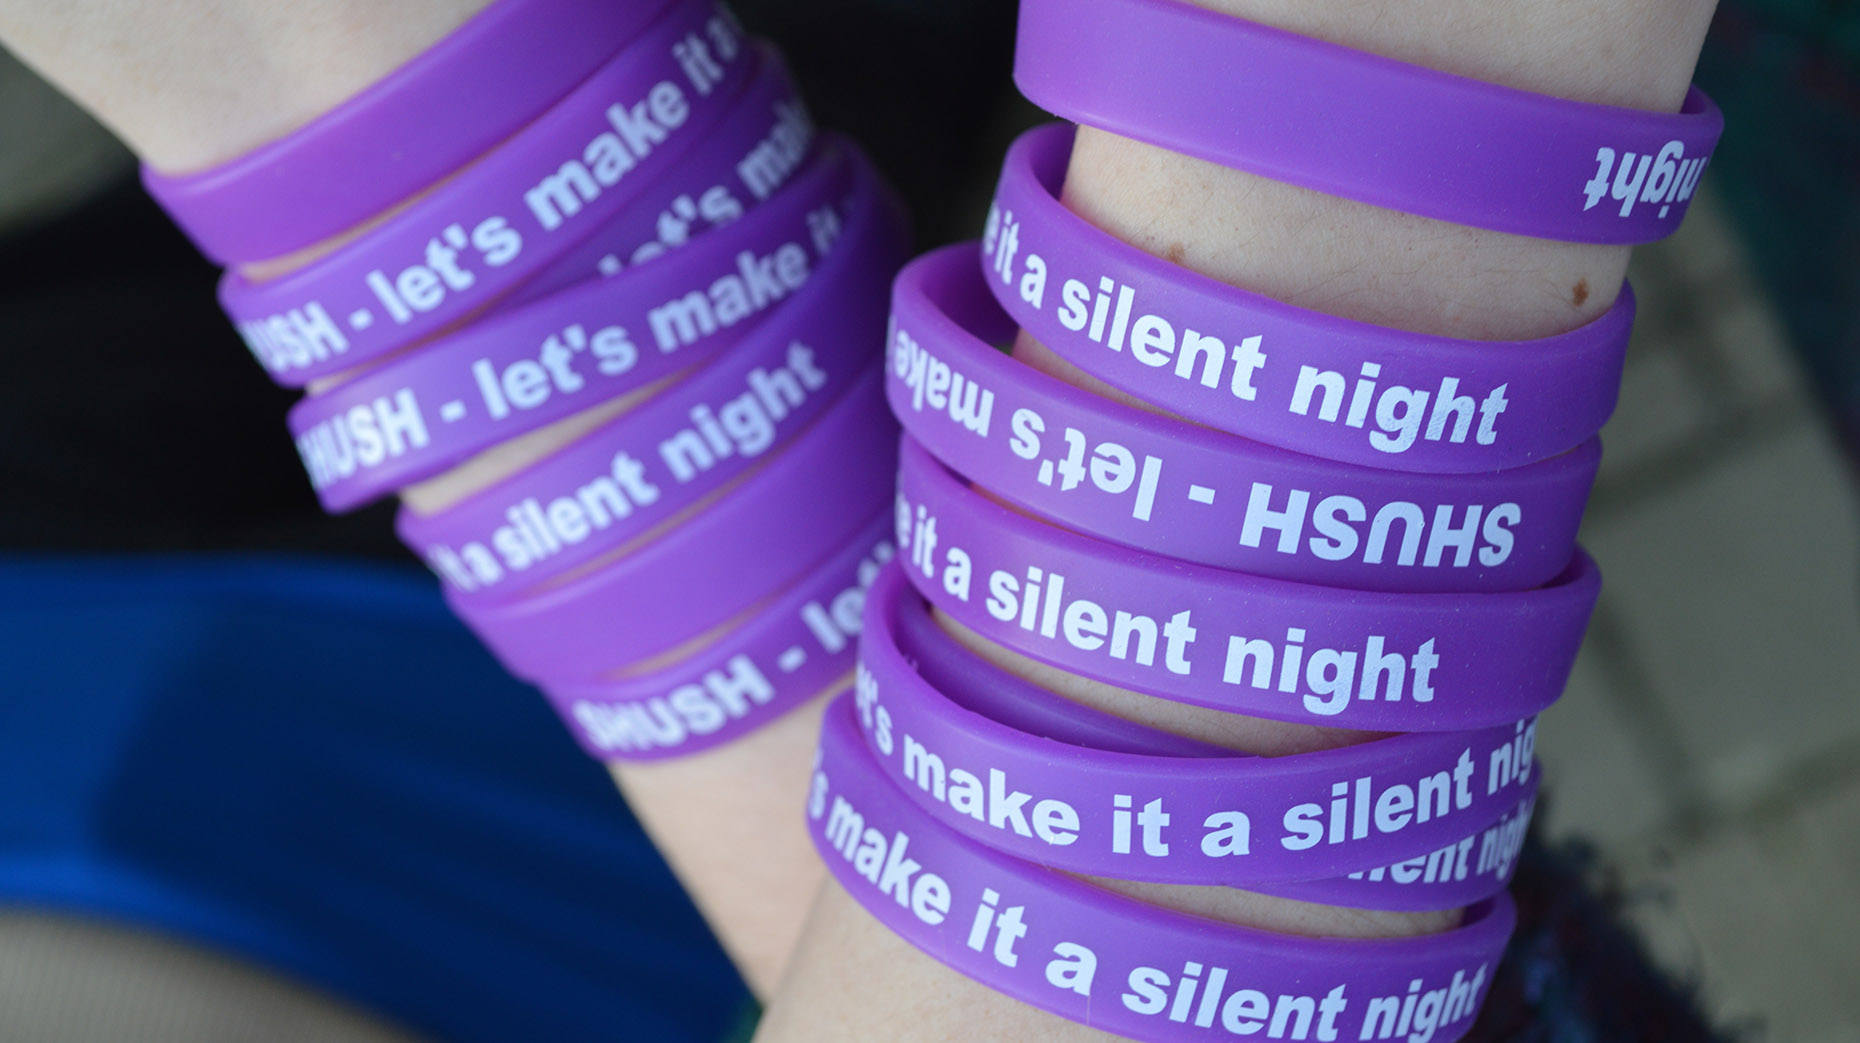 """Wristbands reading """"SHUSH - Let's make it a silent night"""" will be issued to students of the University of Lincoln. Photo: CoLC"""